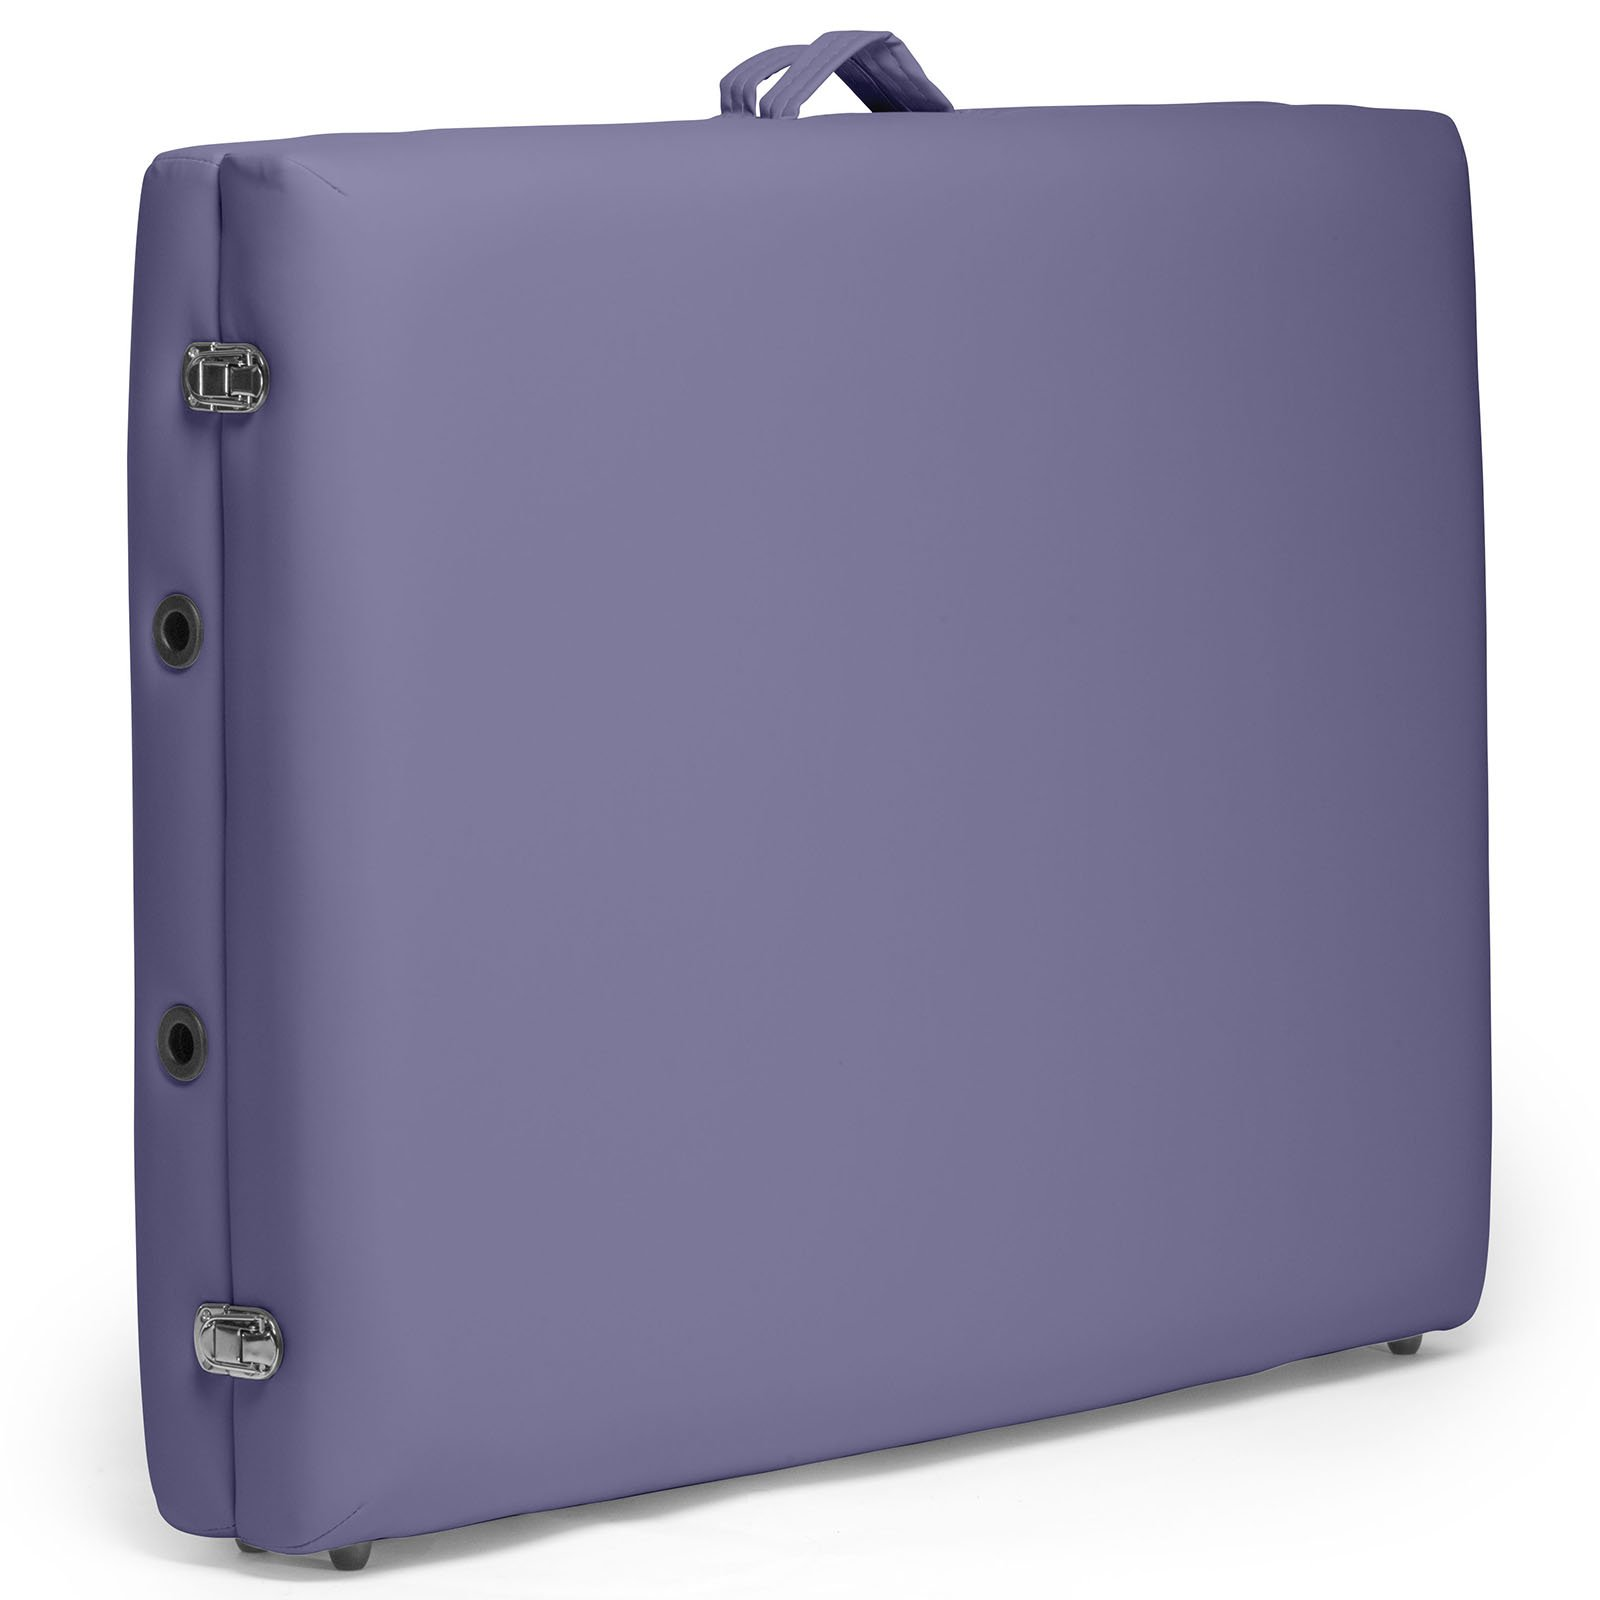 Saloniture Professional Portable Folding Massage Table with Carrying Case - Lavender by Saloniture (Image #3)